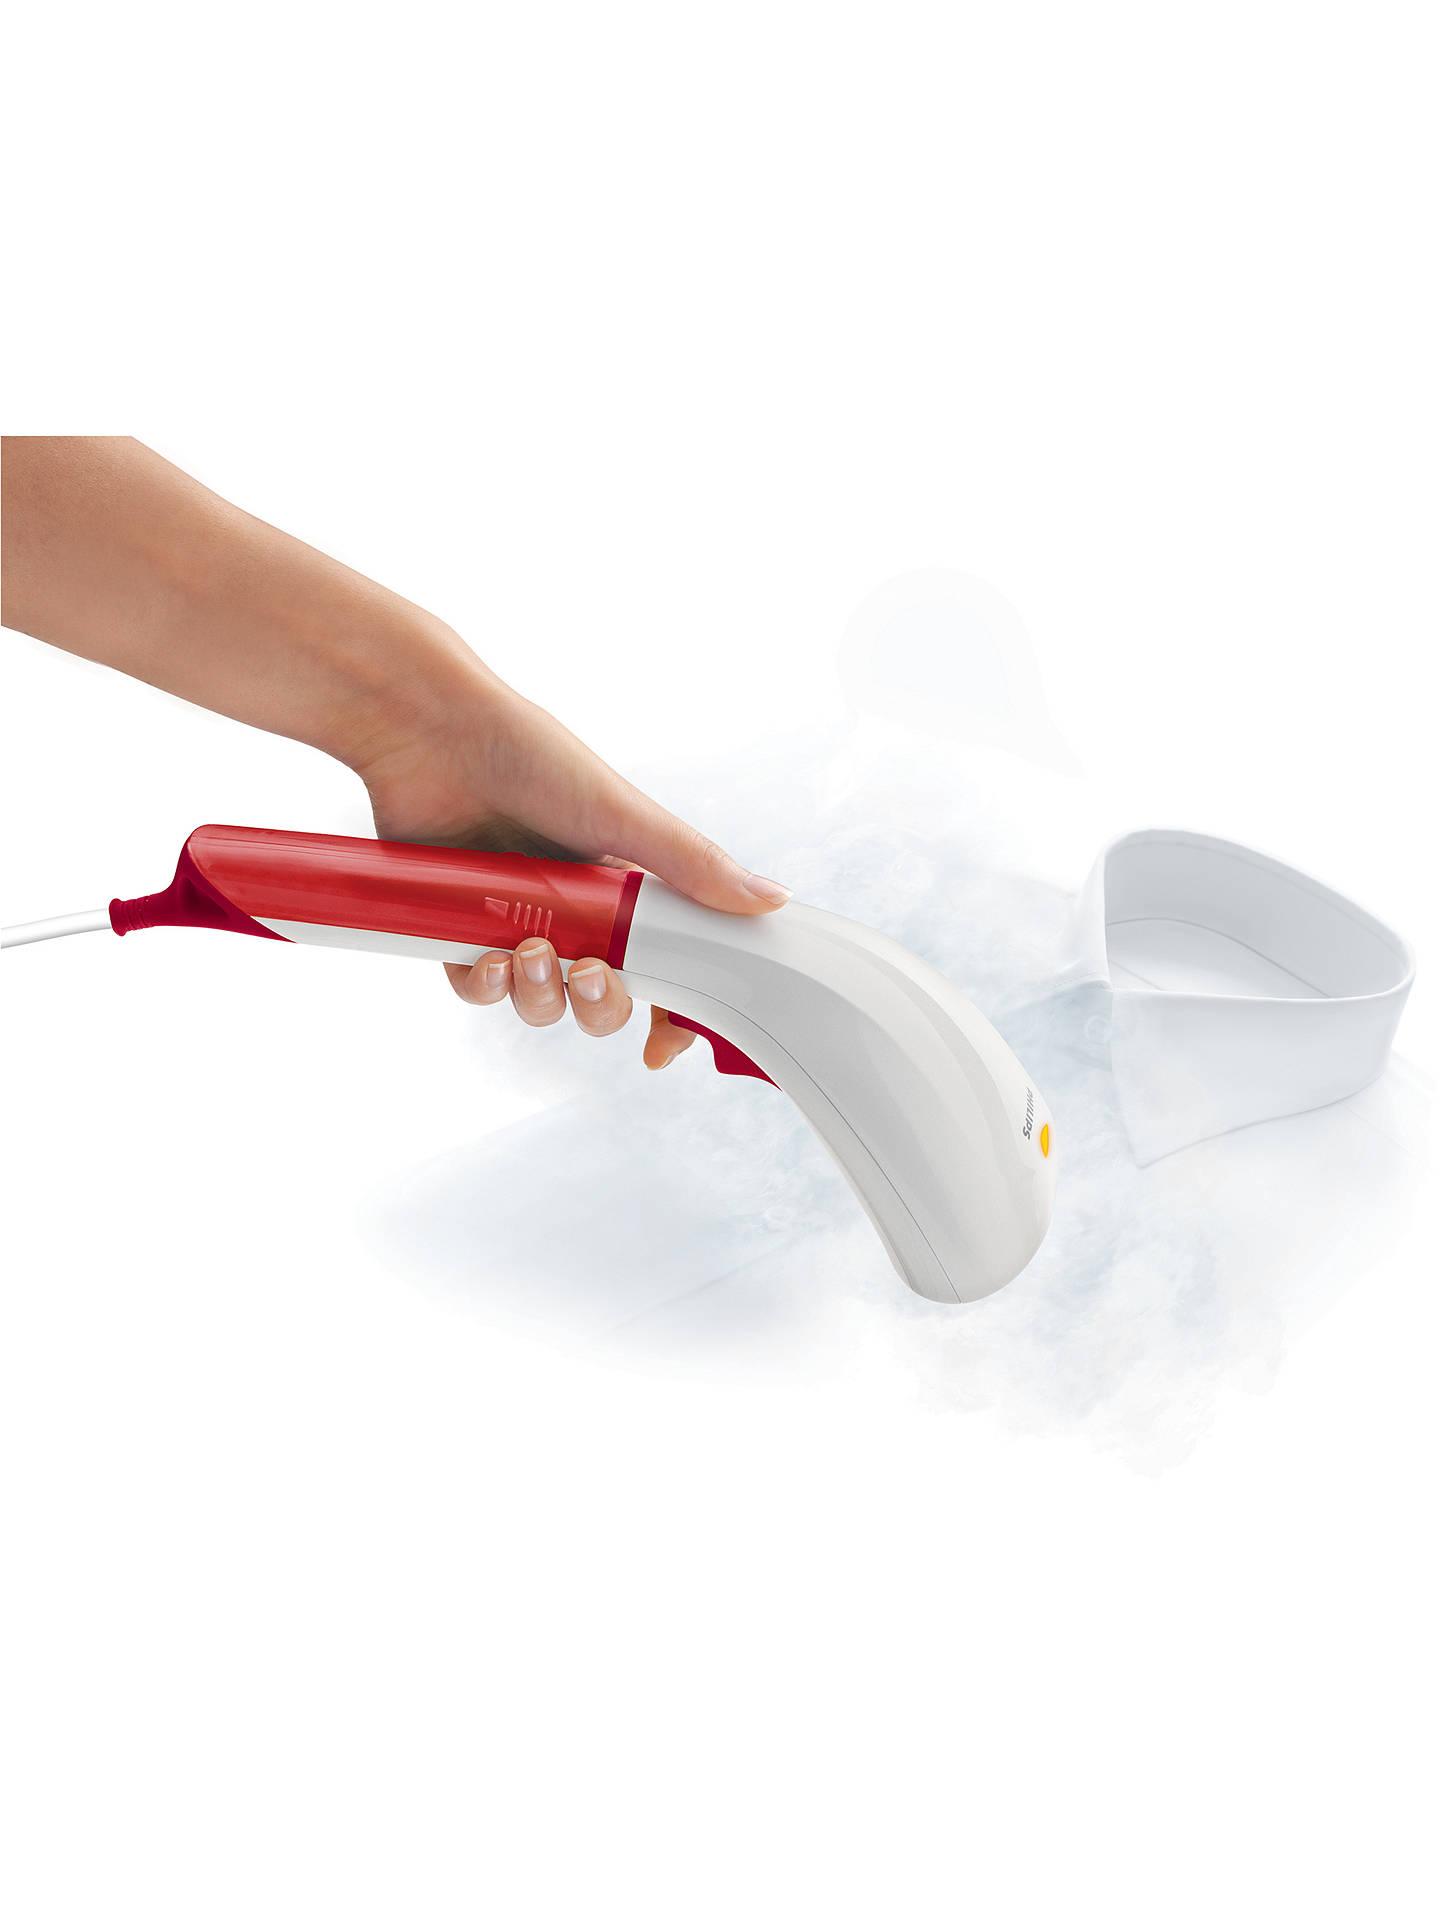 BuyPhilips GC330/47 Steam & Go 2-in-1 Handheld Garment Steamer Online at johnlewis.com